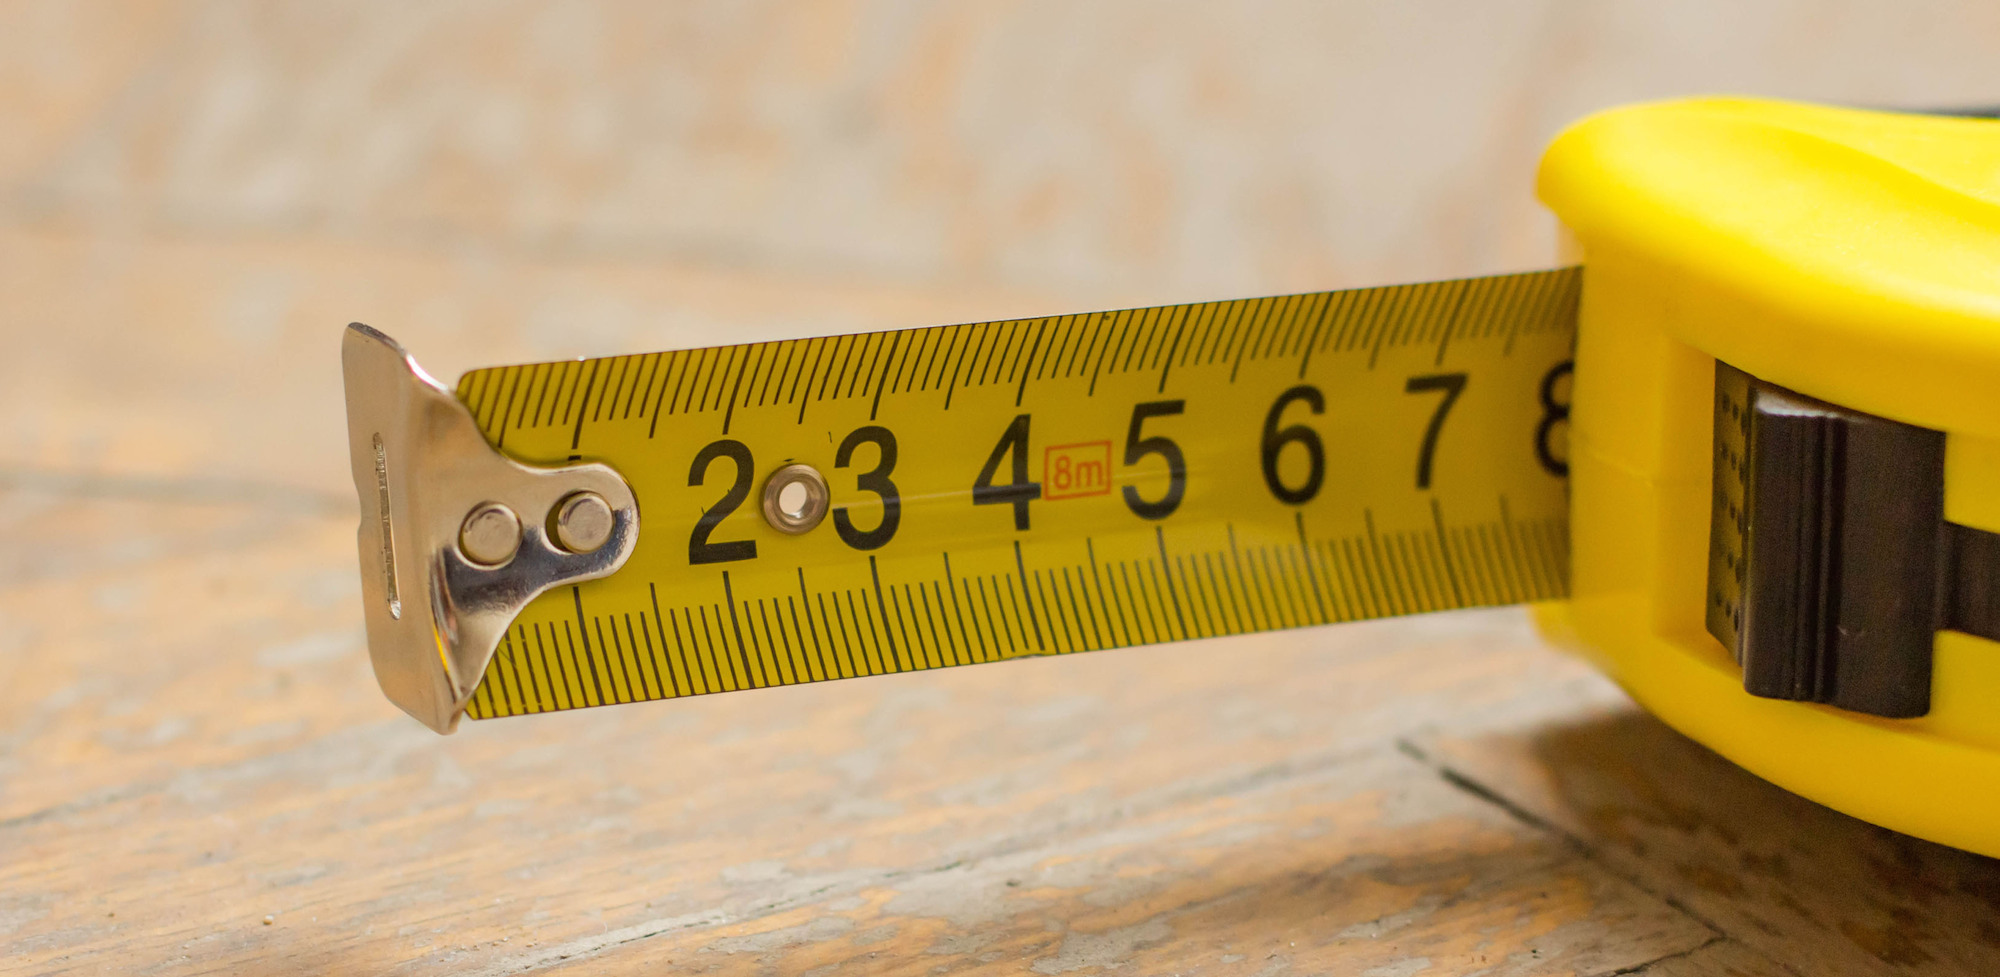 The Best Length for Every Online Content